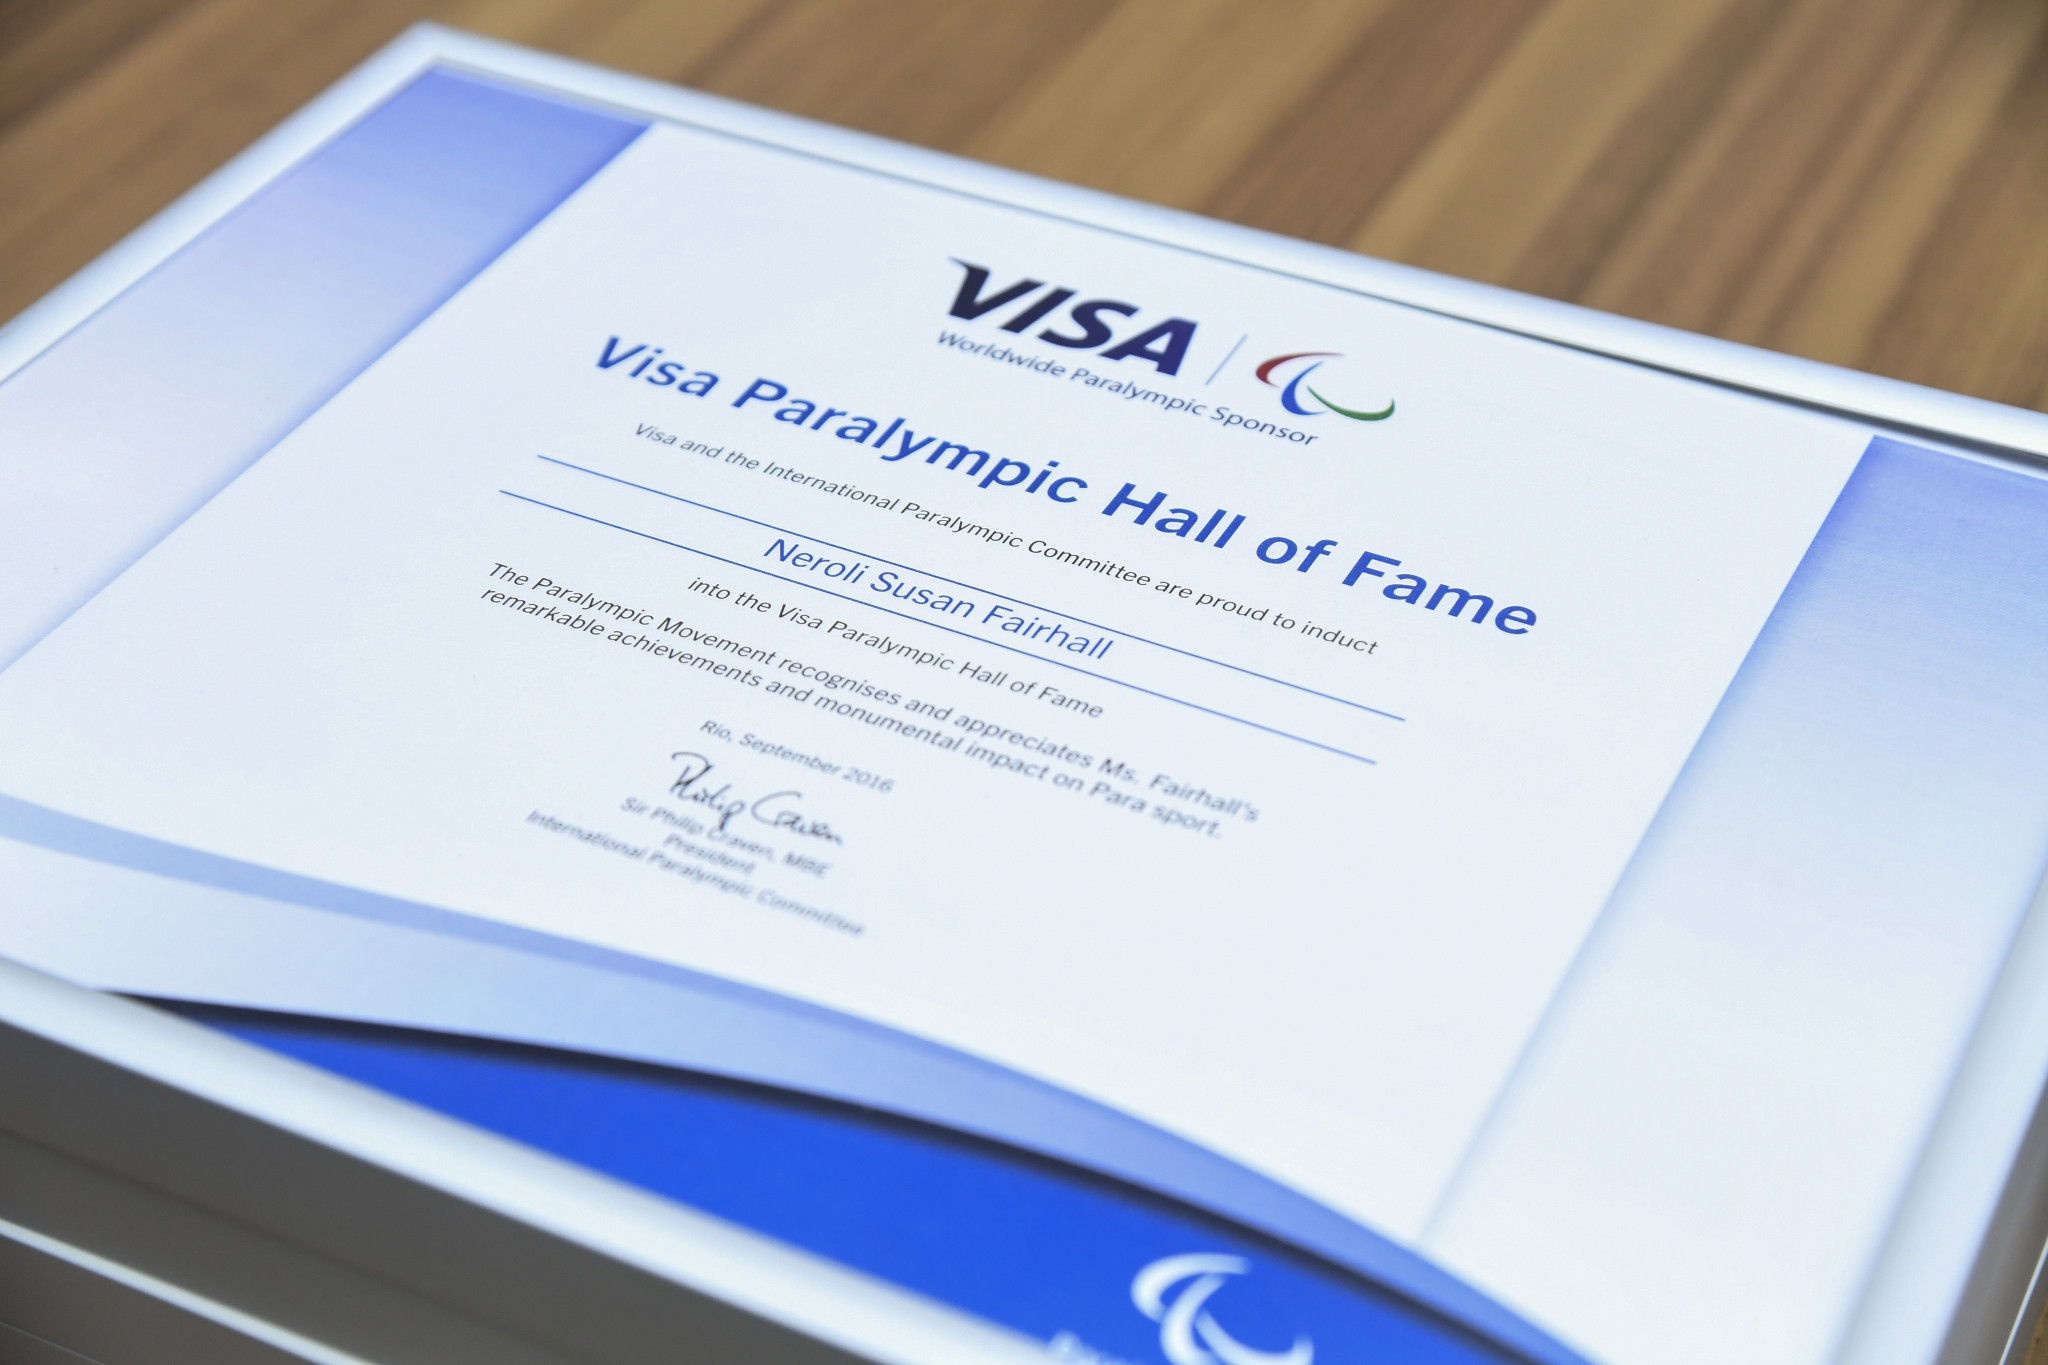 Visa has supported Paralympic sport since 2003, including initiatives such as the Hall of Fame ©Getty Images